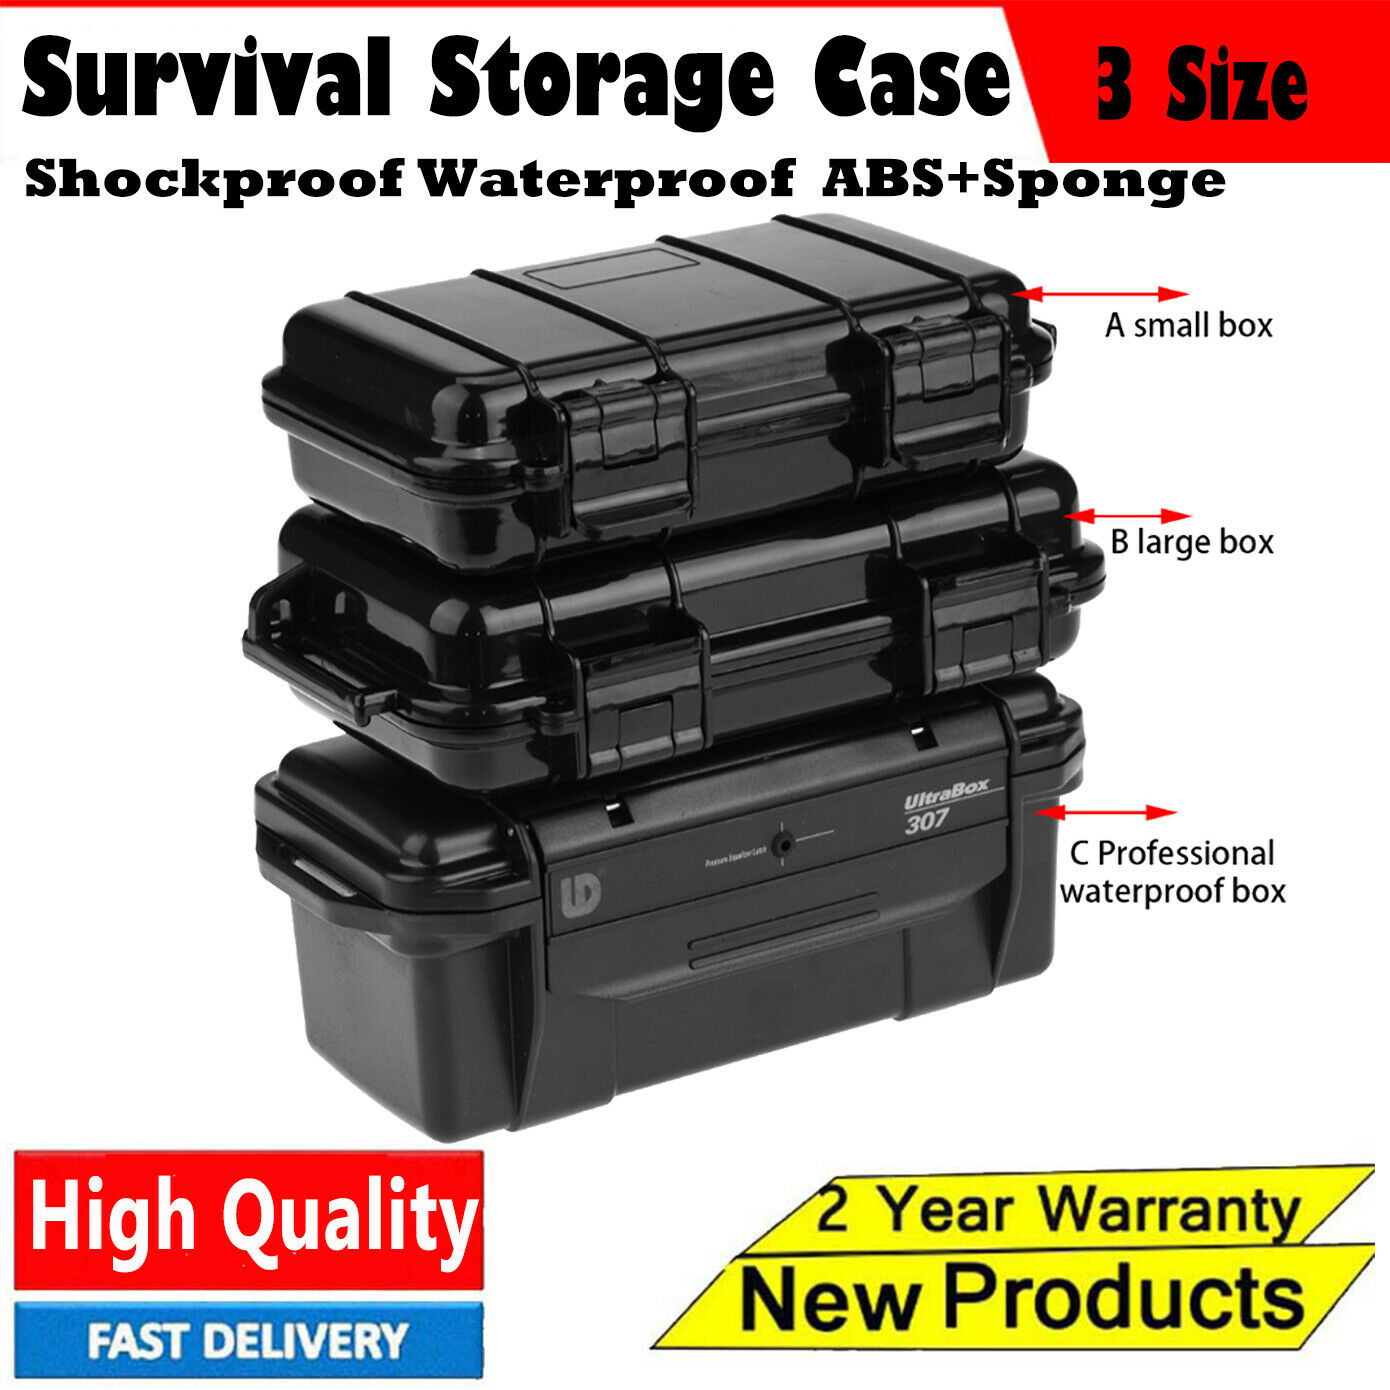 Portable Outdoor Shockproof Airtight Survival Tool Storage Case Container Box